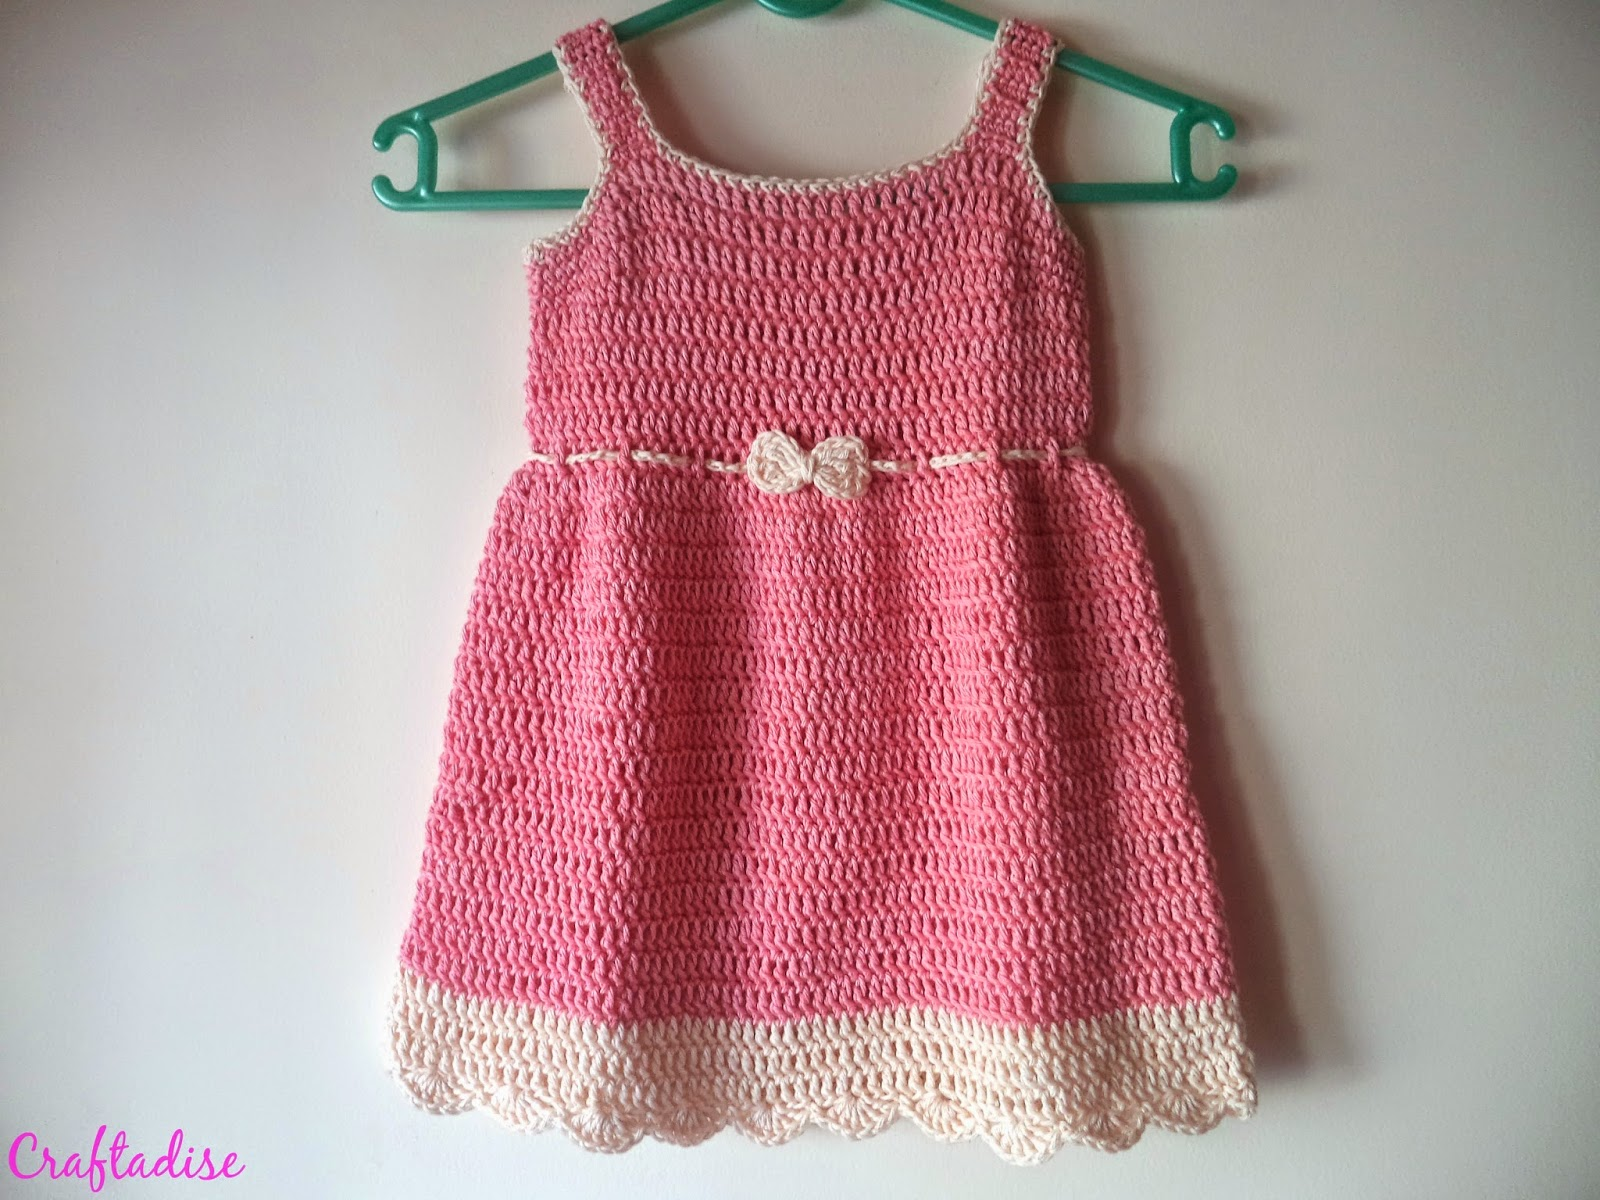 Made in craftadise top art crafts home decor blog in india beat the heat crochet summer toddler dress free patterns dt1010fo